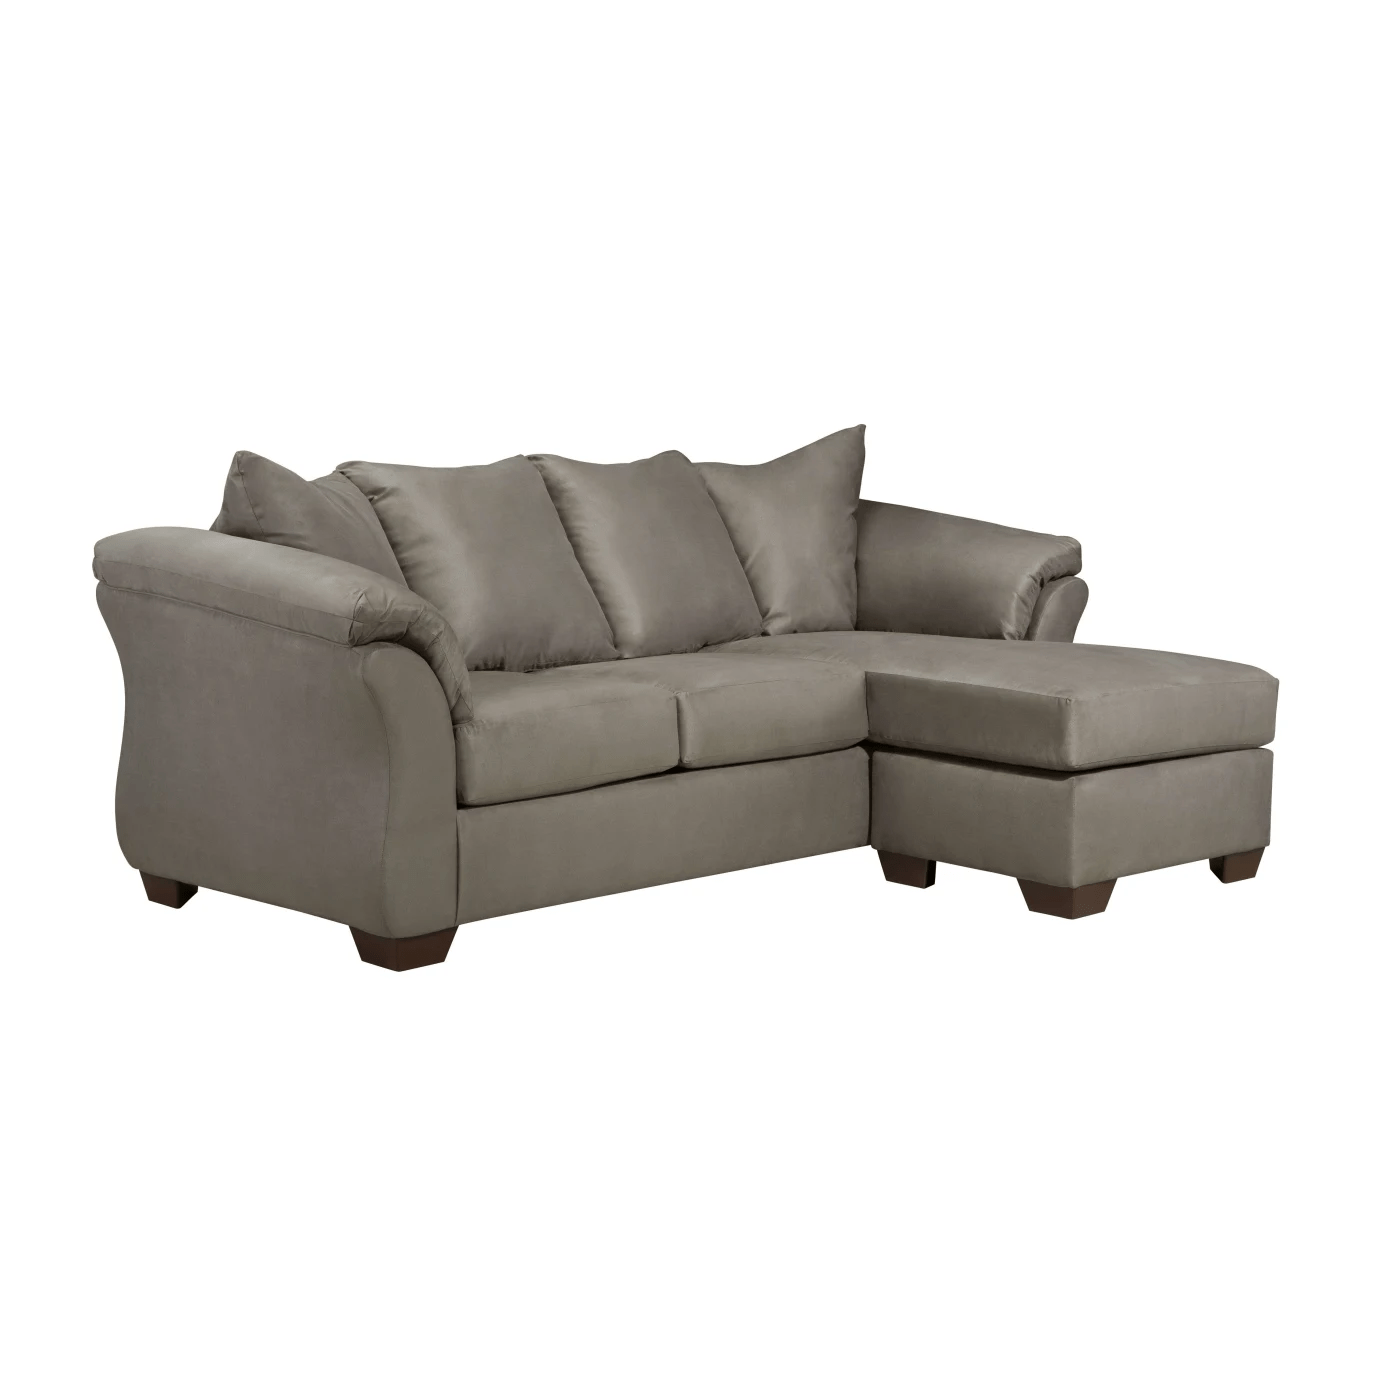 darcy sofa chaise ashley furniture how to get biro ink off leather signature design by cobblestone